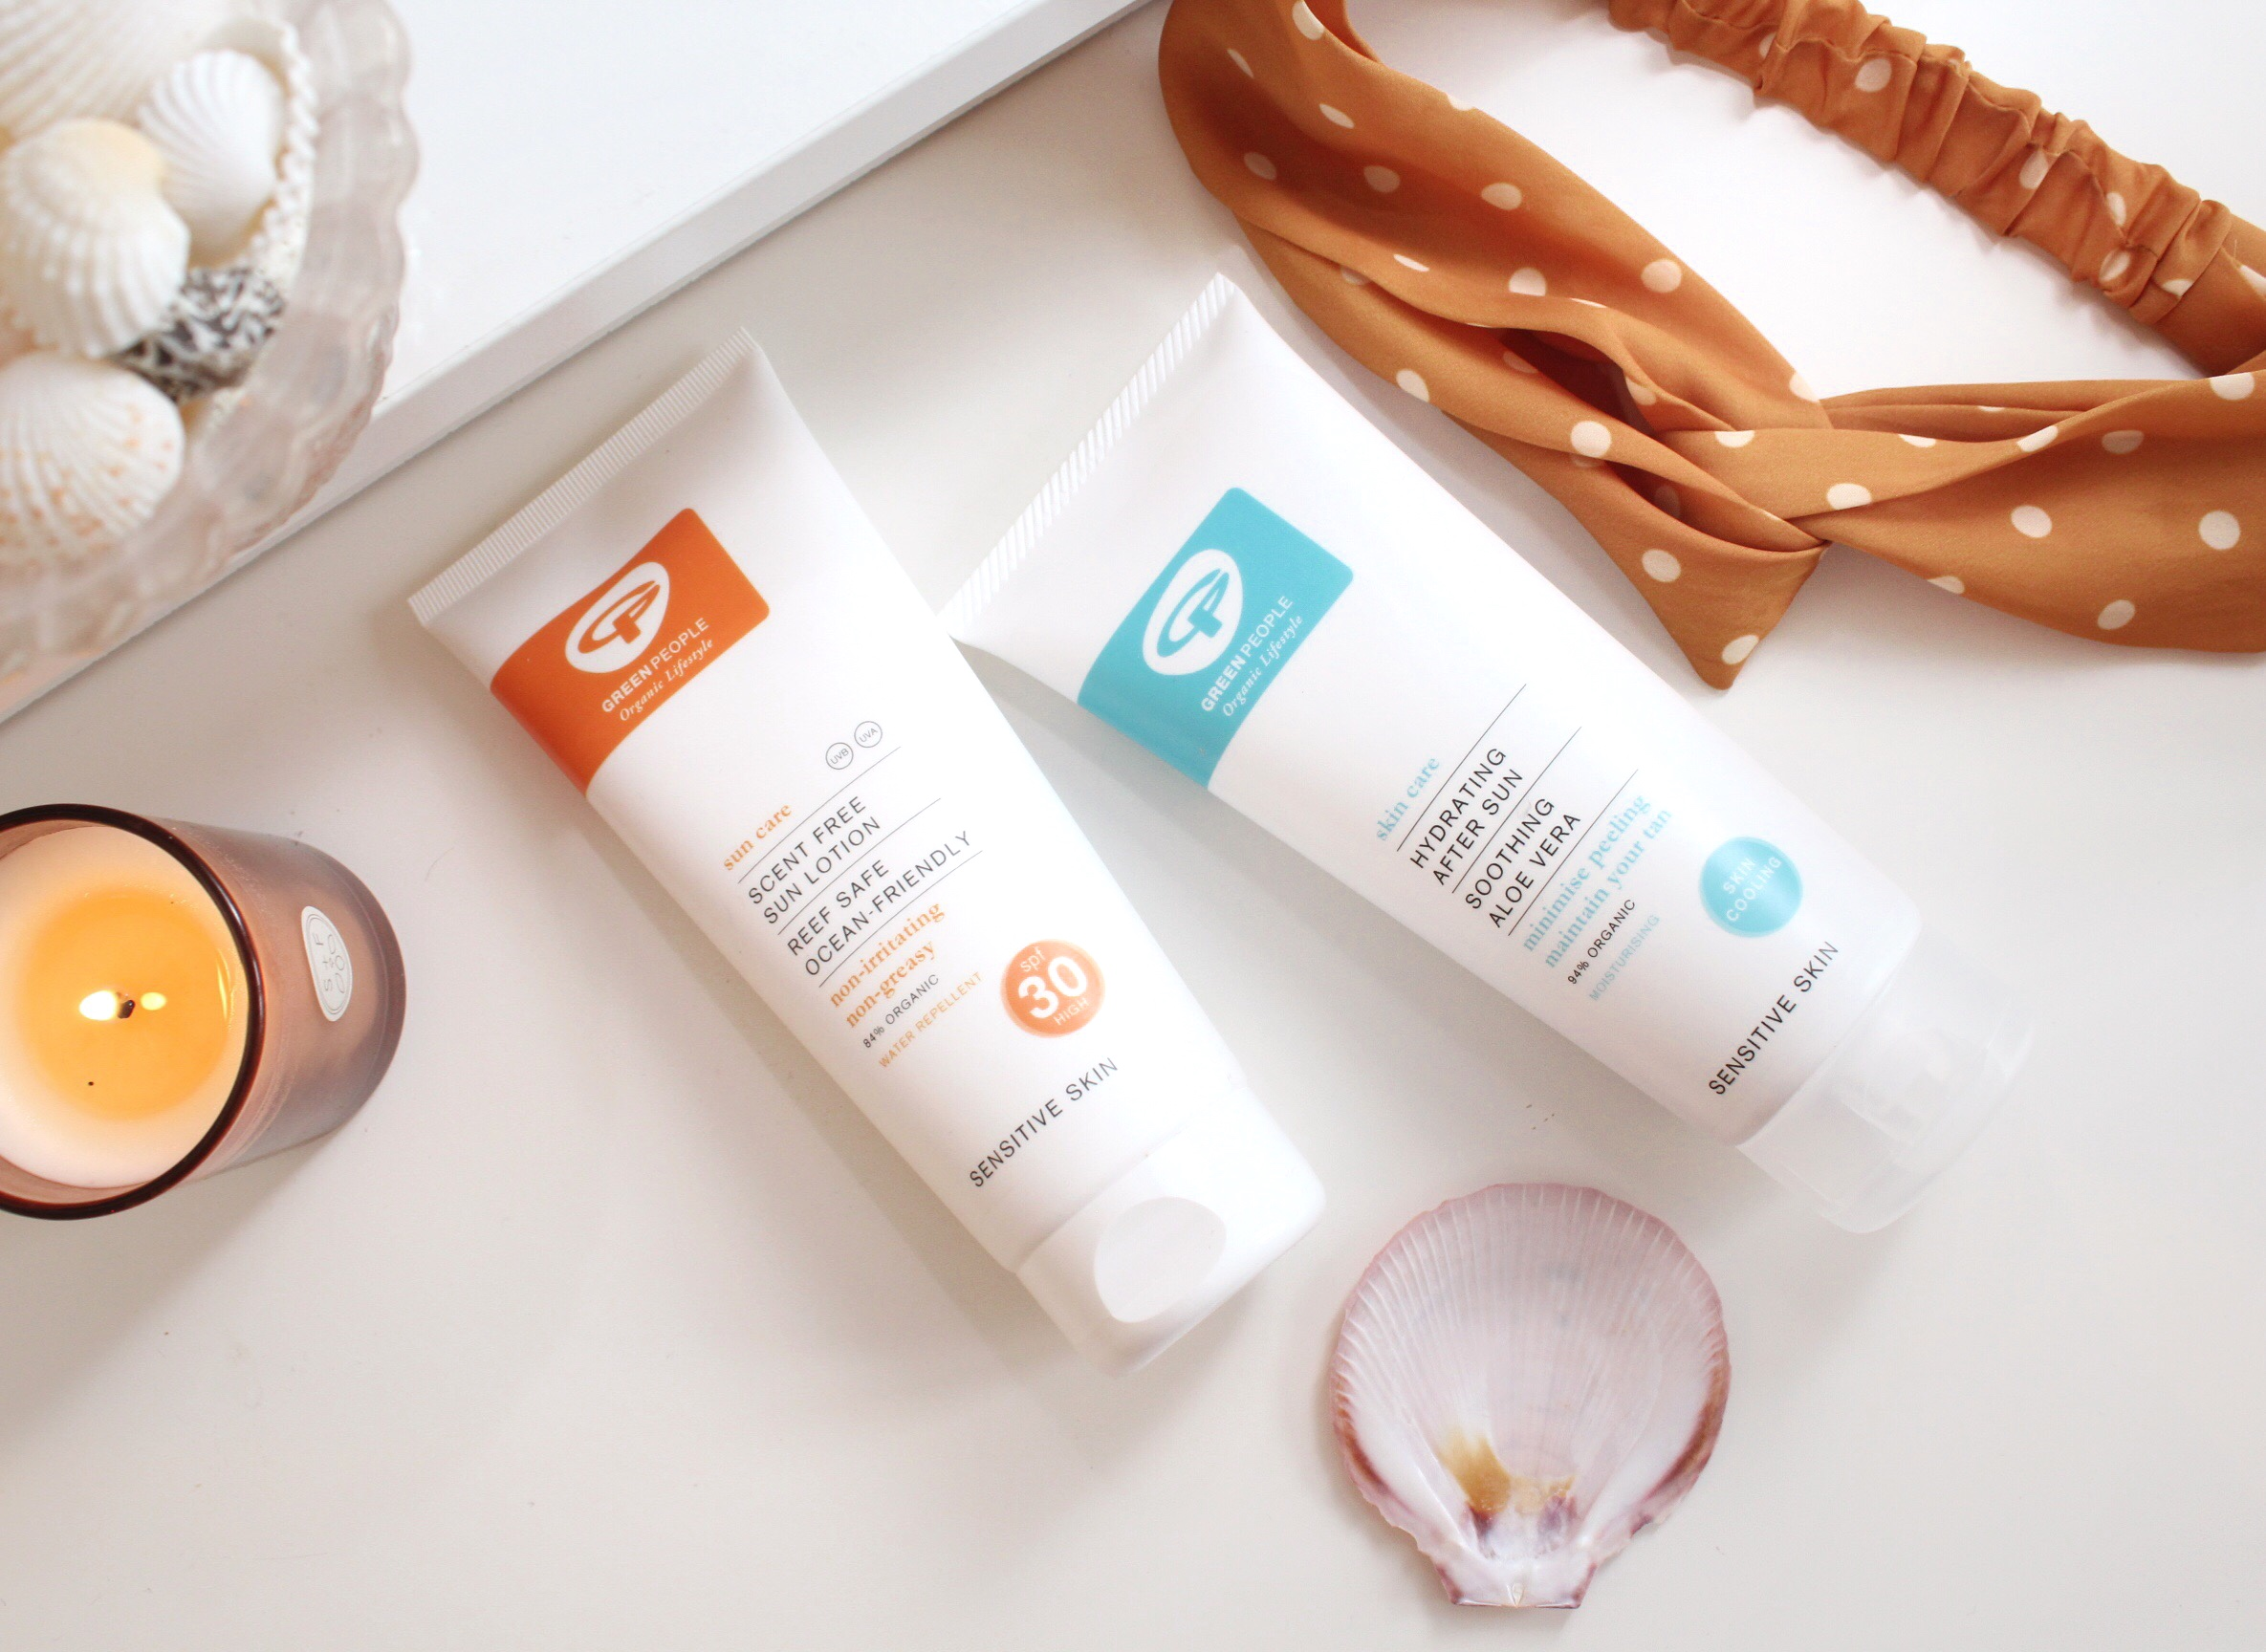 Green People UK Sensitive Skin Cruelty Free Suncare Review Emma Curran Blog